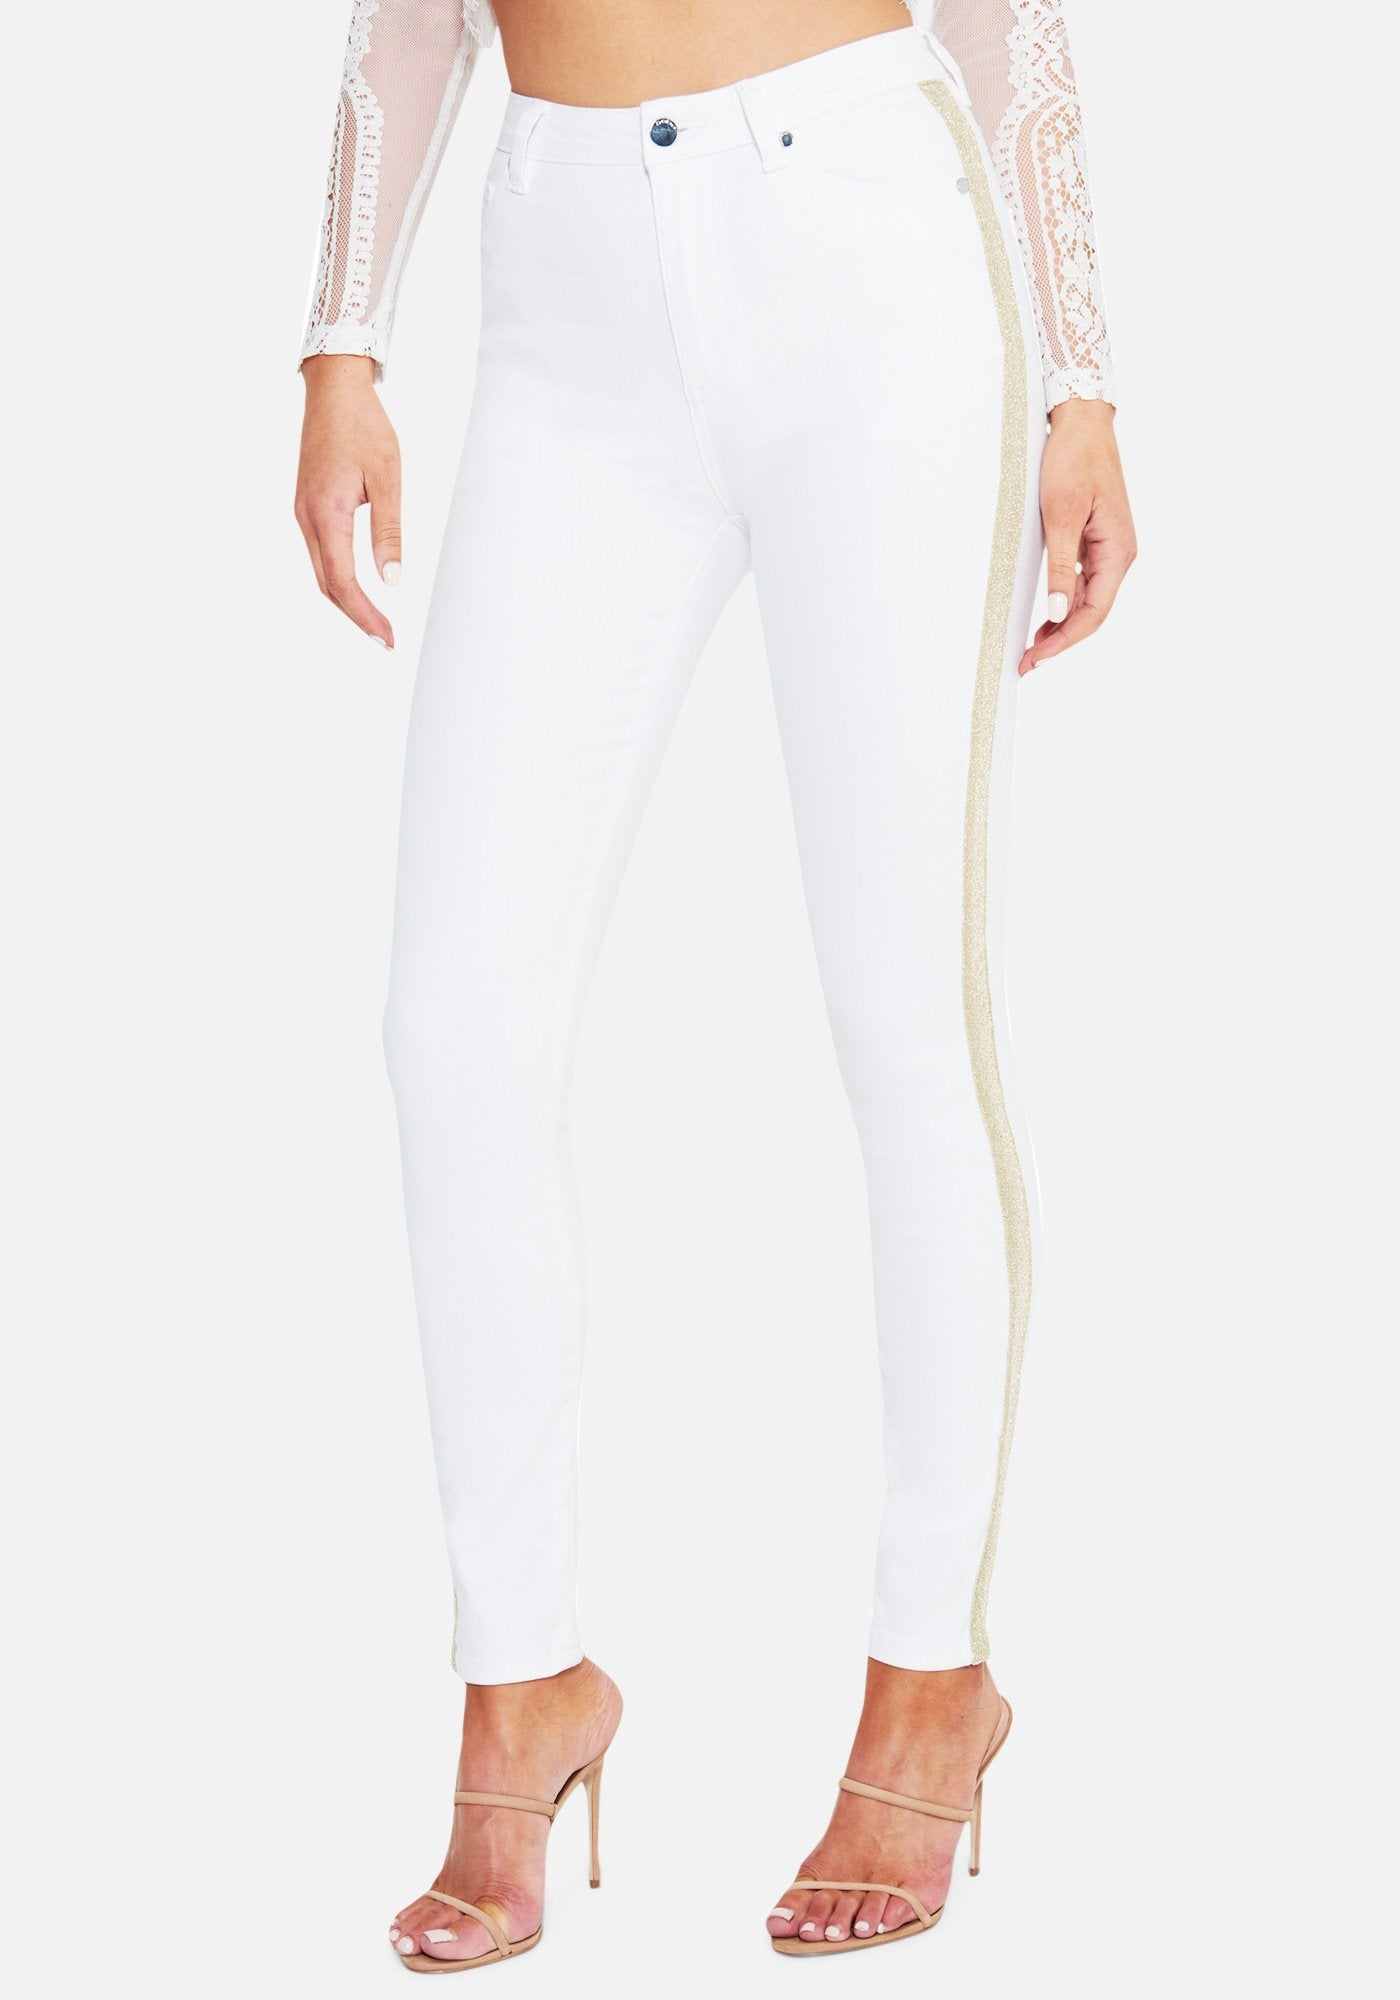 Bebe Women's Stripe Side Detail Skinny Jeans, Size 25 in WHITE Cotton/Spandex/Viscose